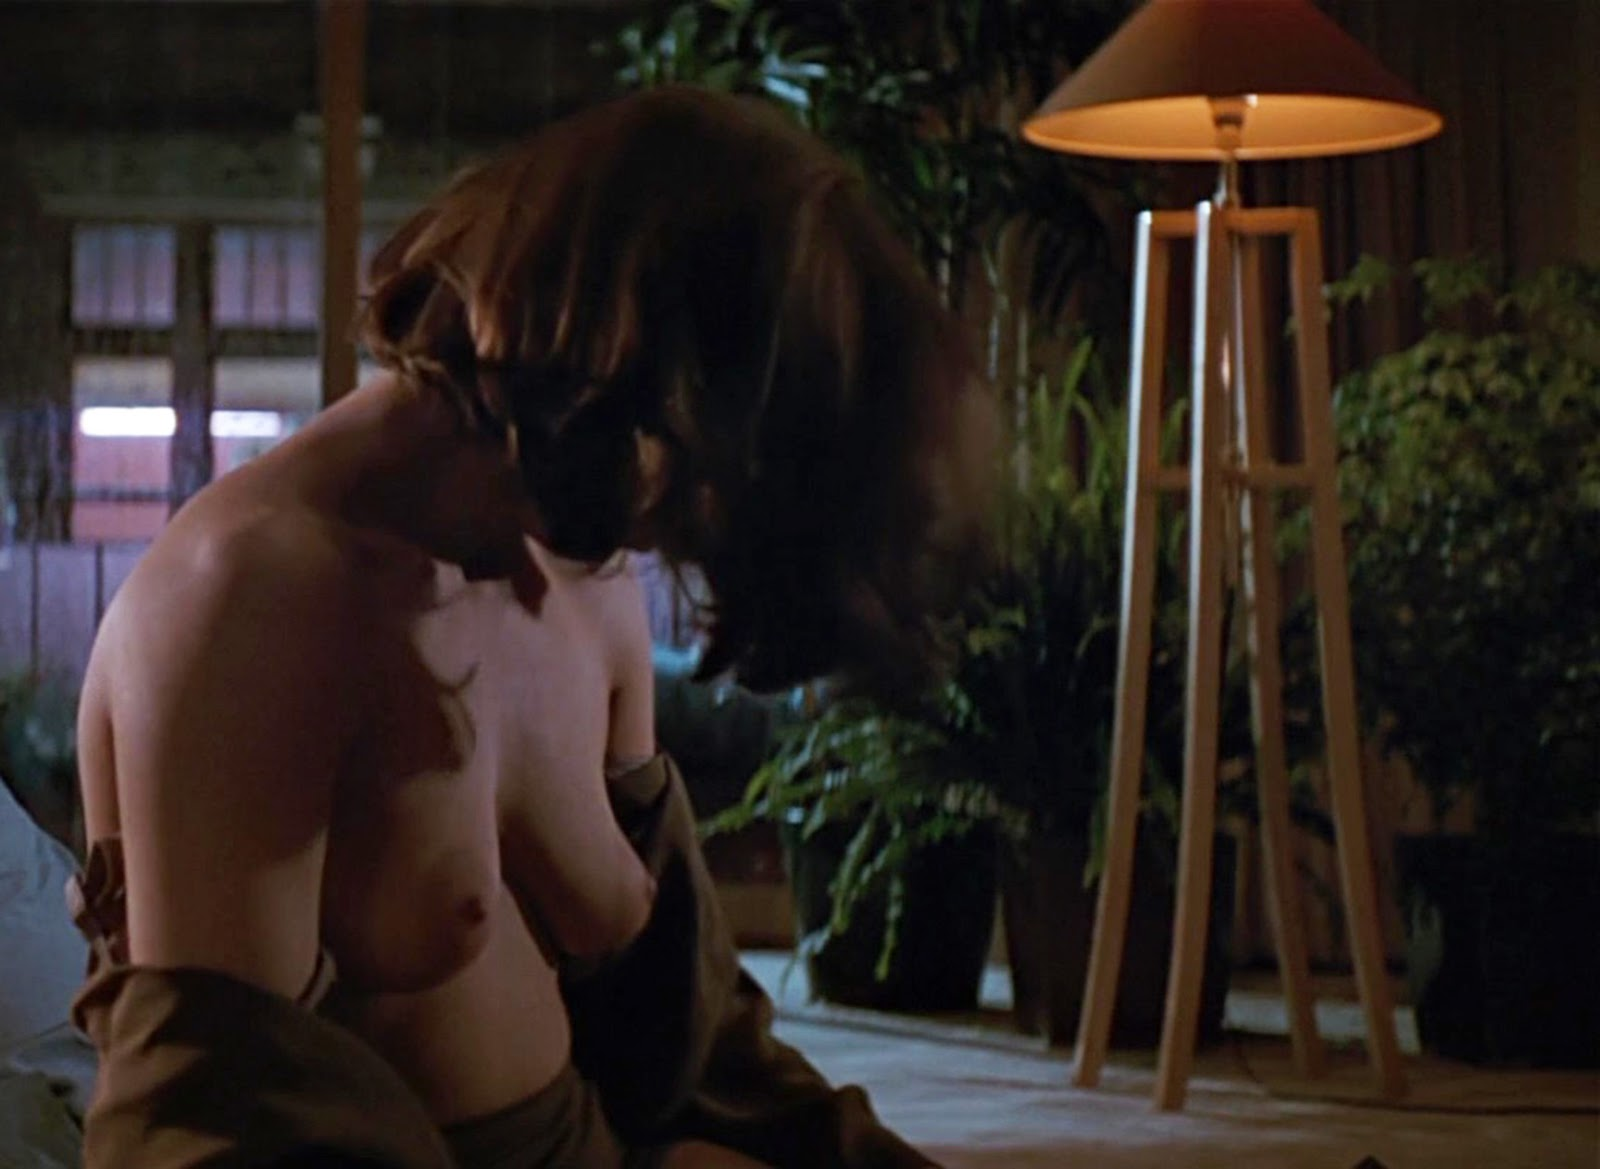 Jeanne tripplehorn in the nude, mom son sex tape